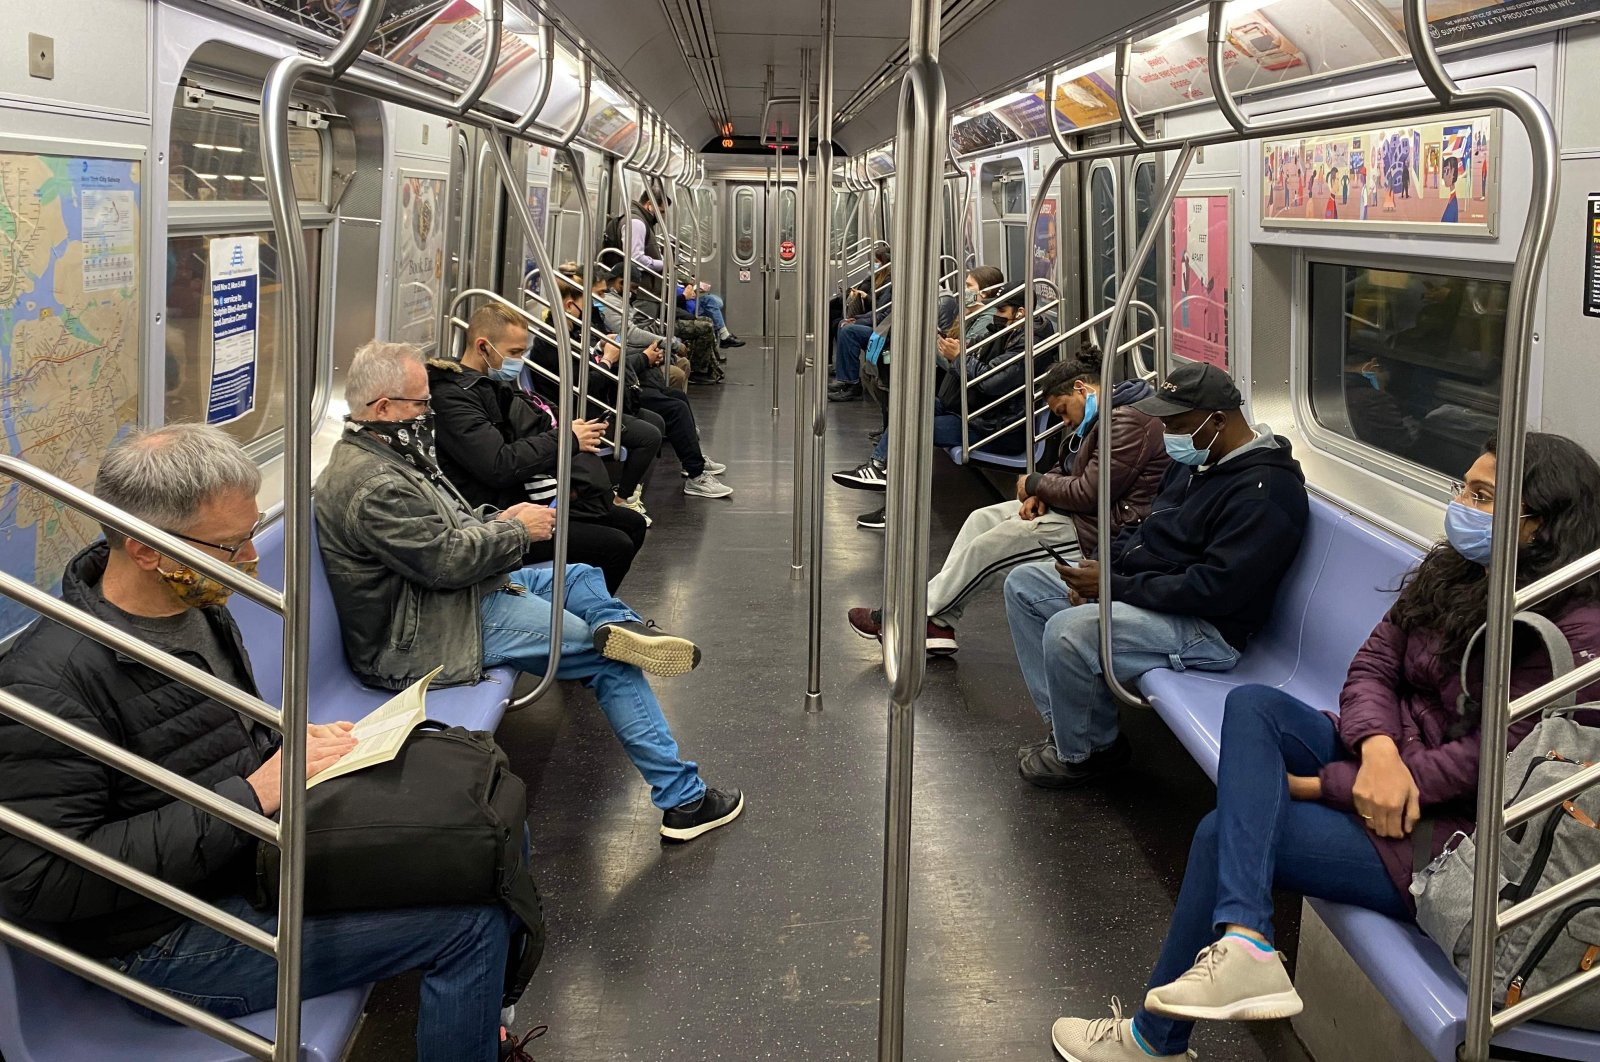 Commuters ride the subway, New York City, Nov. 5, 2020. (AFP Photo)